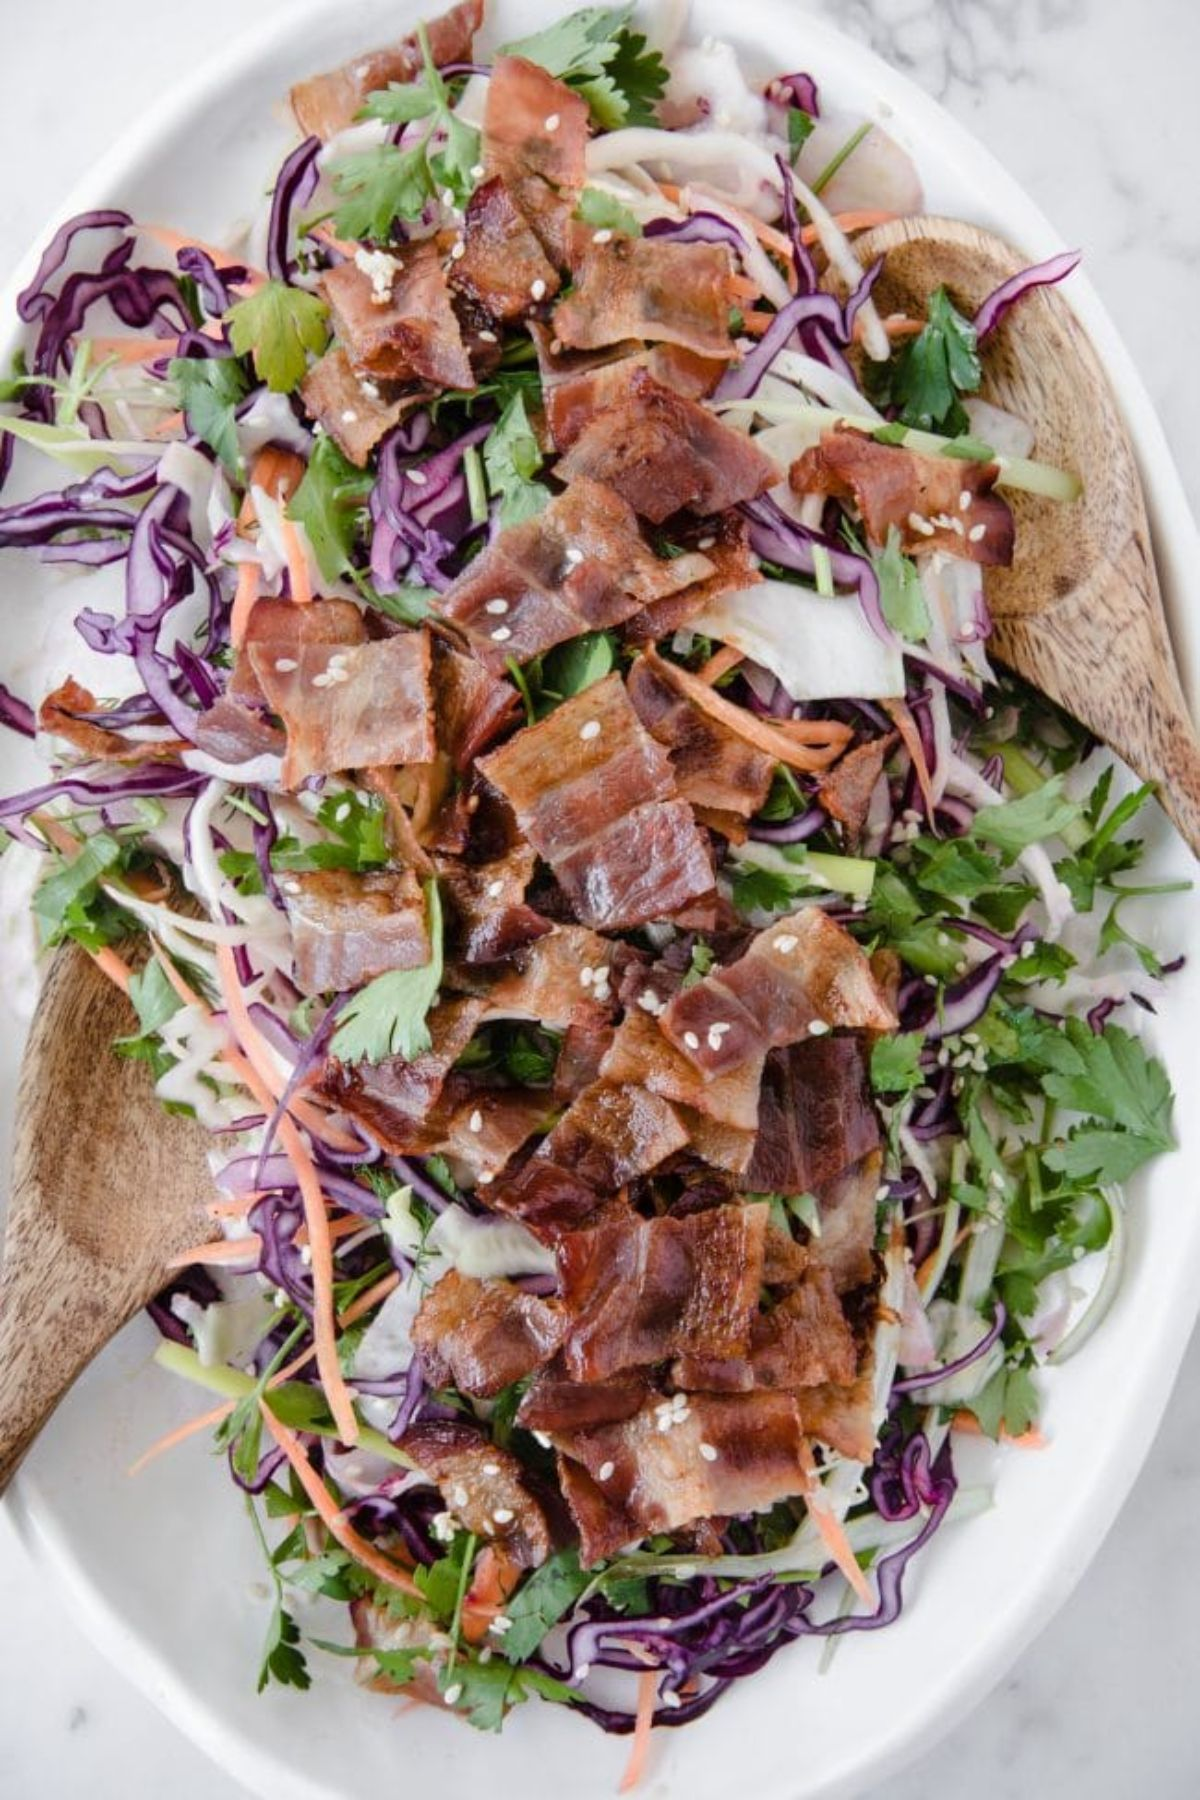 An oval white dish with bacon and salad. A wooden spoon is resting on both sides